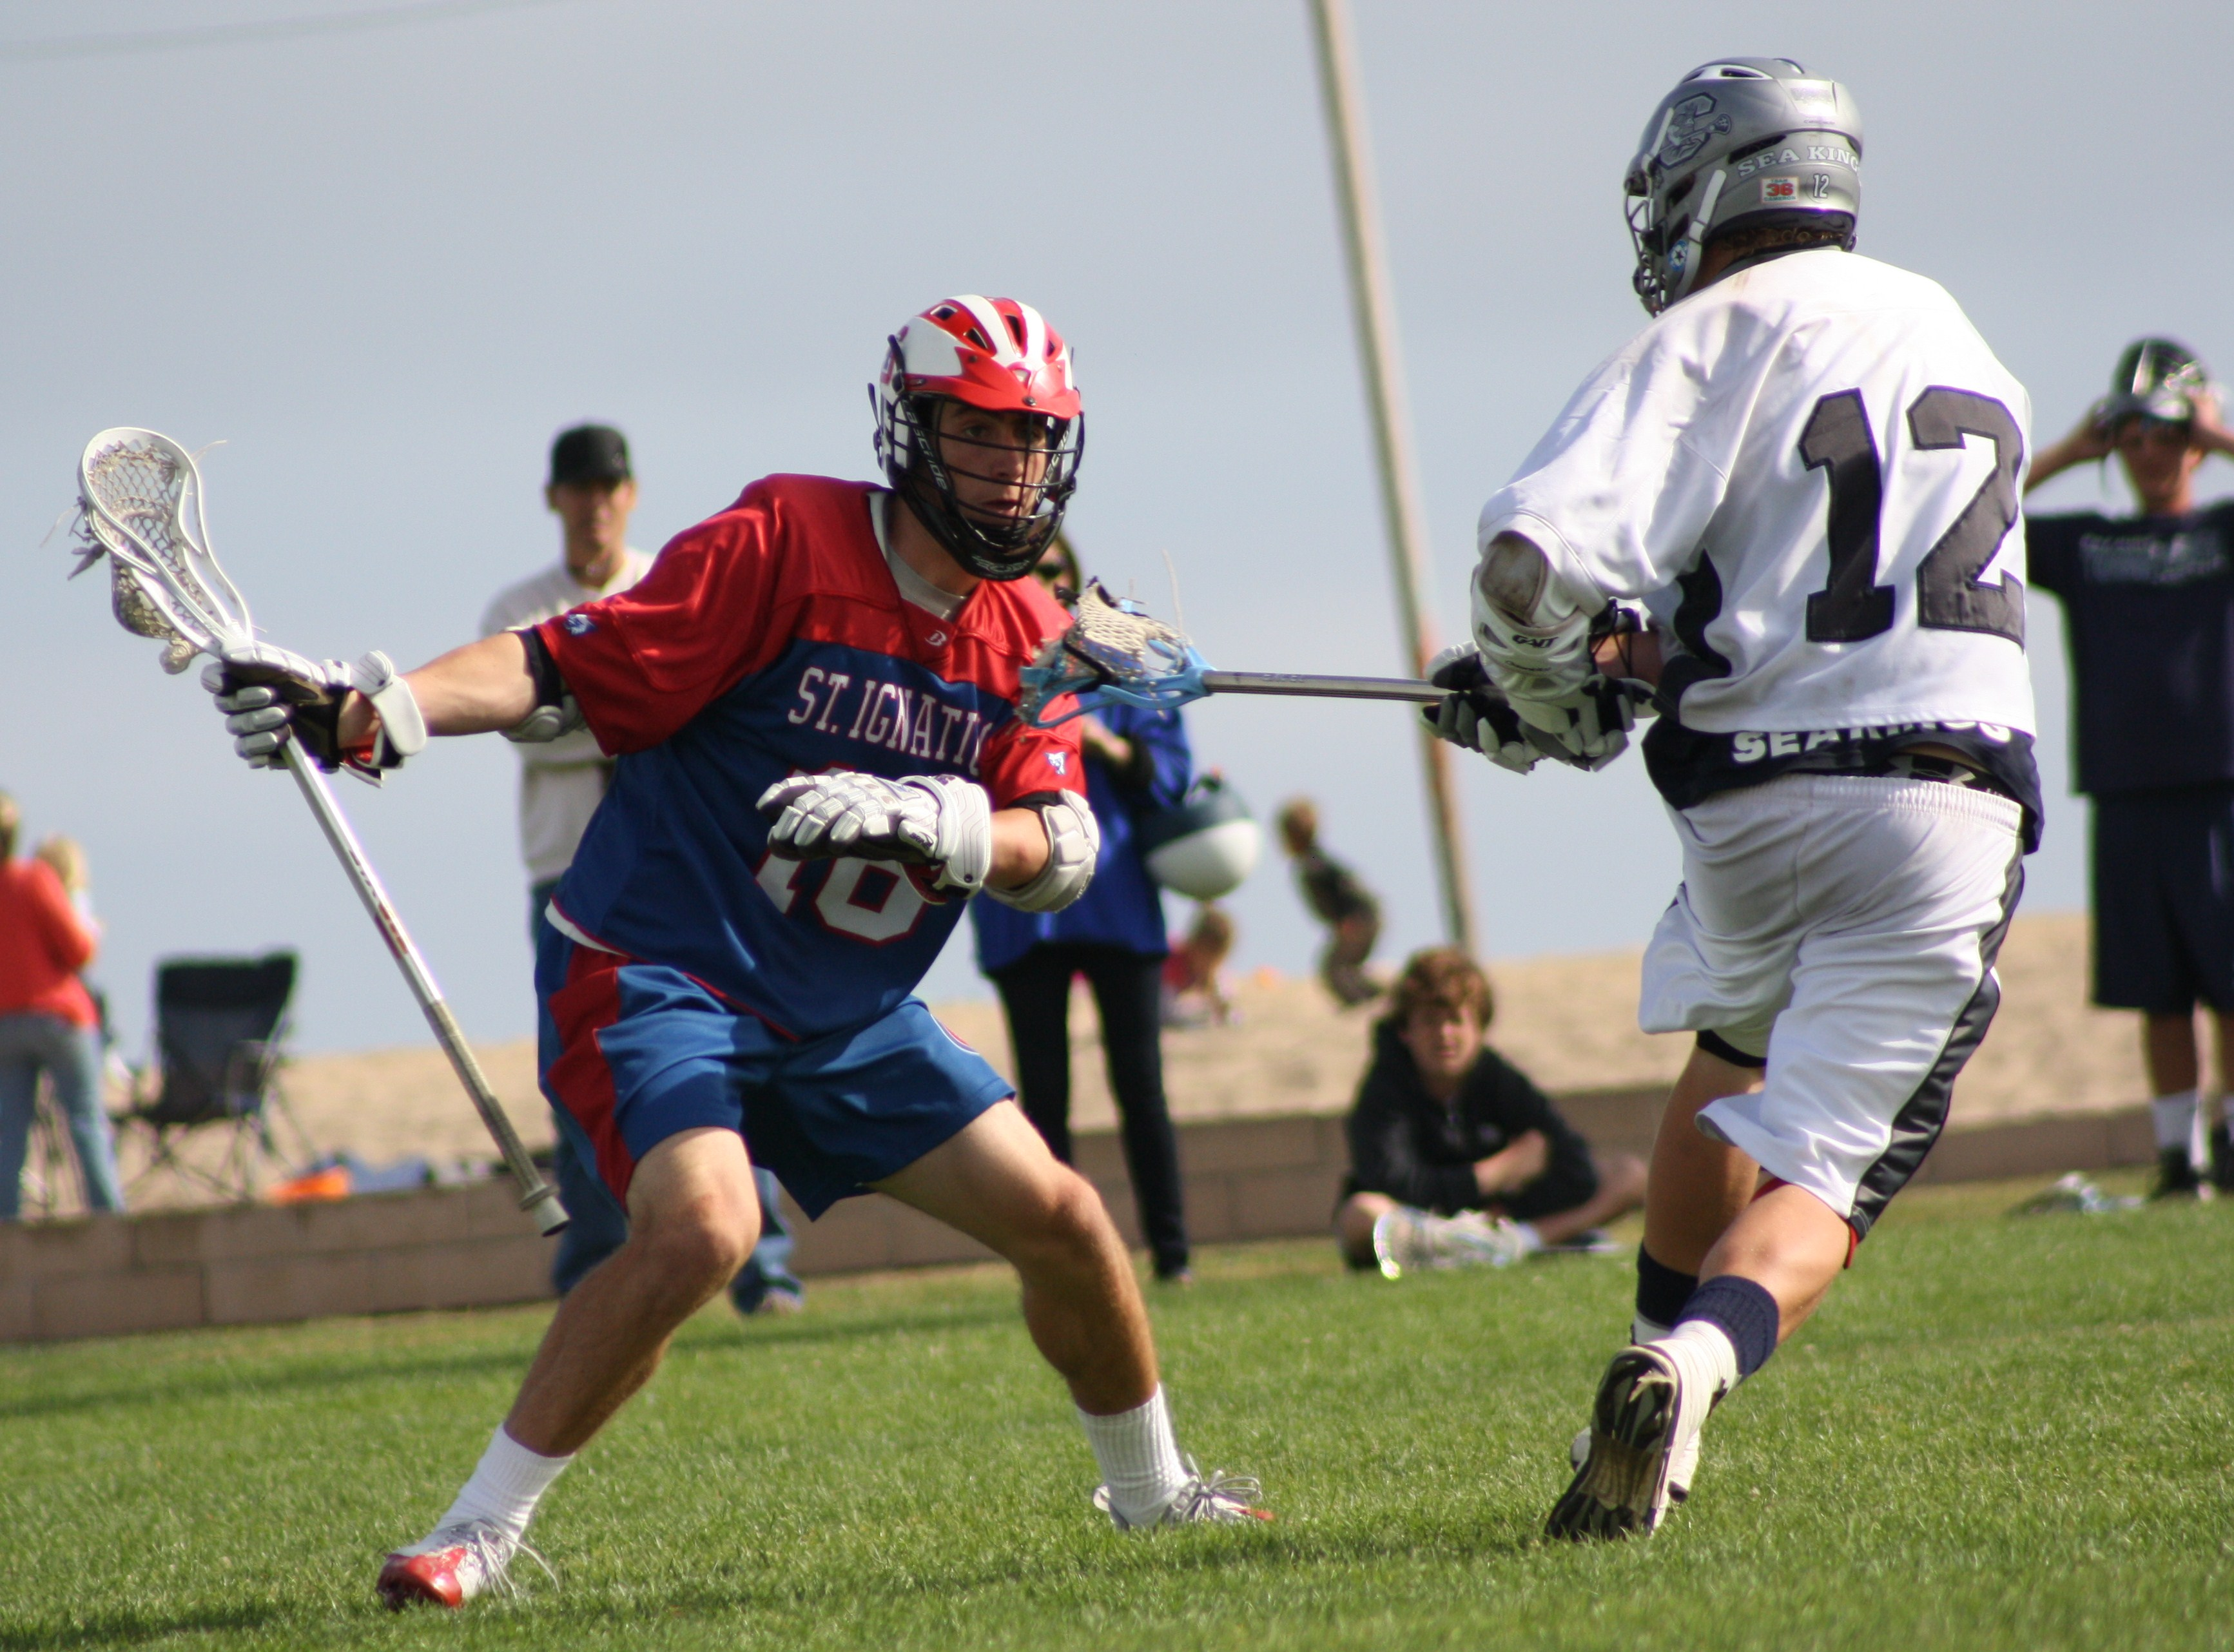 "St. Ignatius' Rob Emery battled Corona del Mar's Noah Molnar in ""Battle of Northern California and Southern California"" on May 2, 2009 at Peninsula Park in Newport Beach, CA. Photo by LaxBuzz"